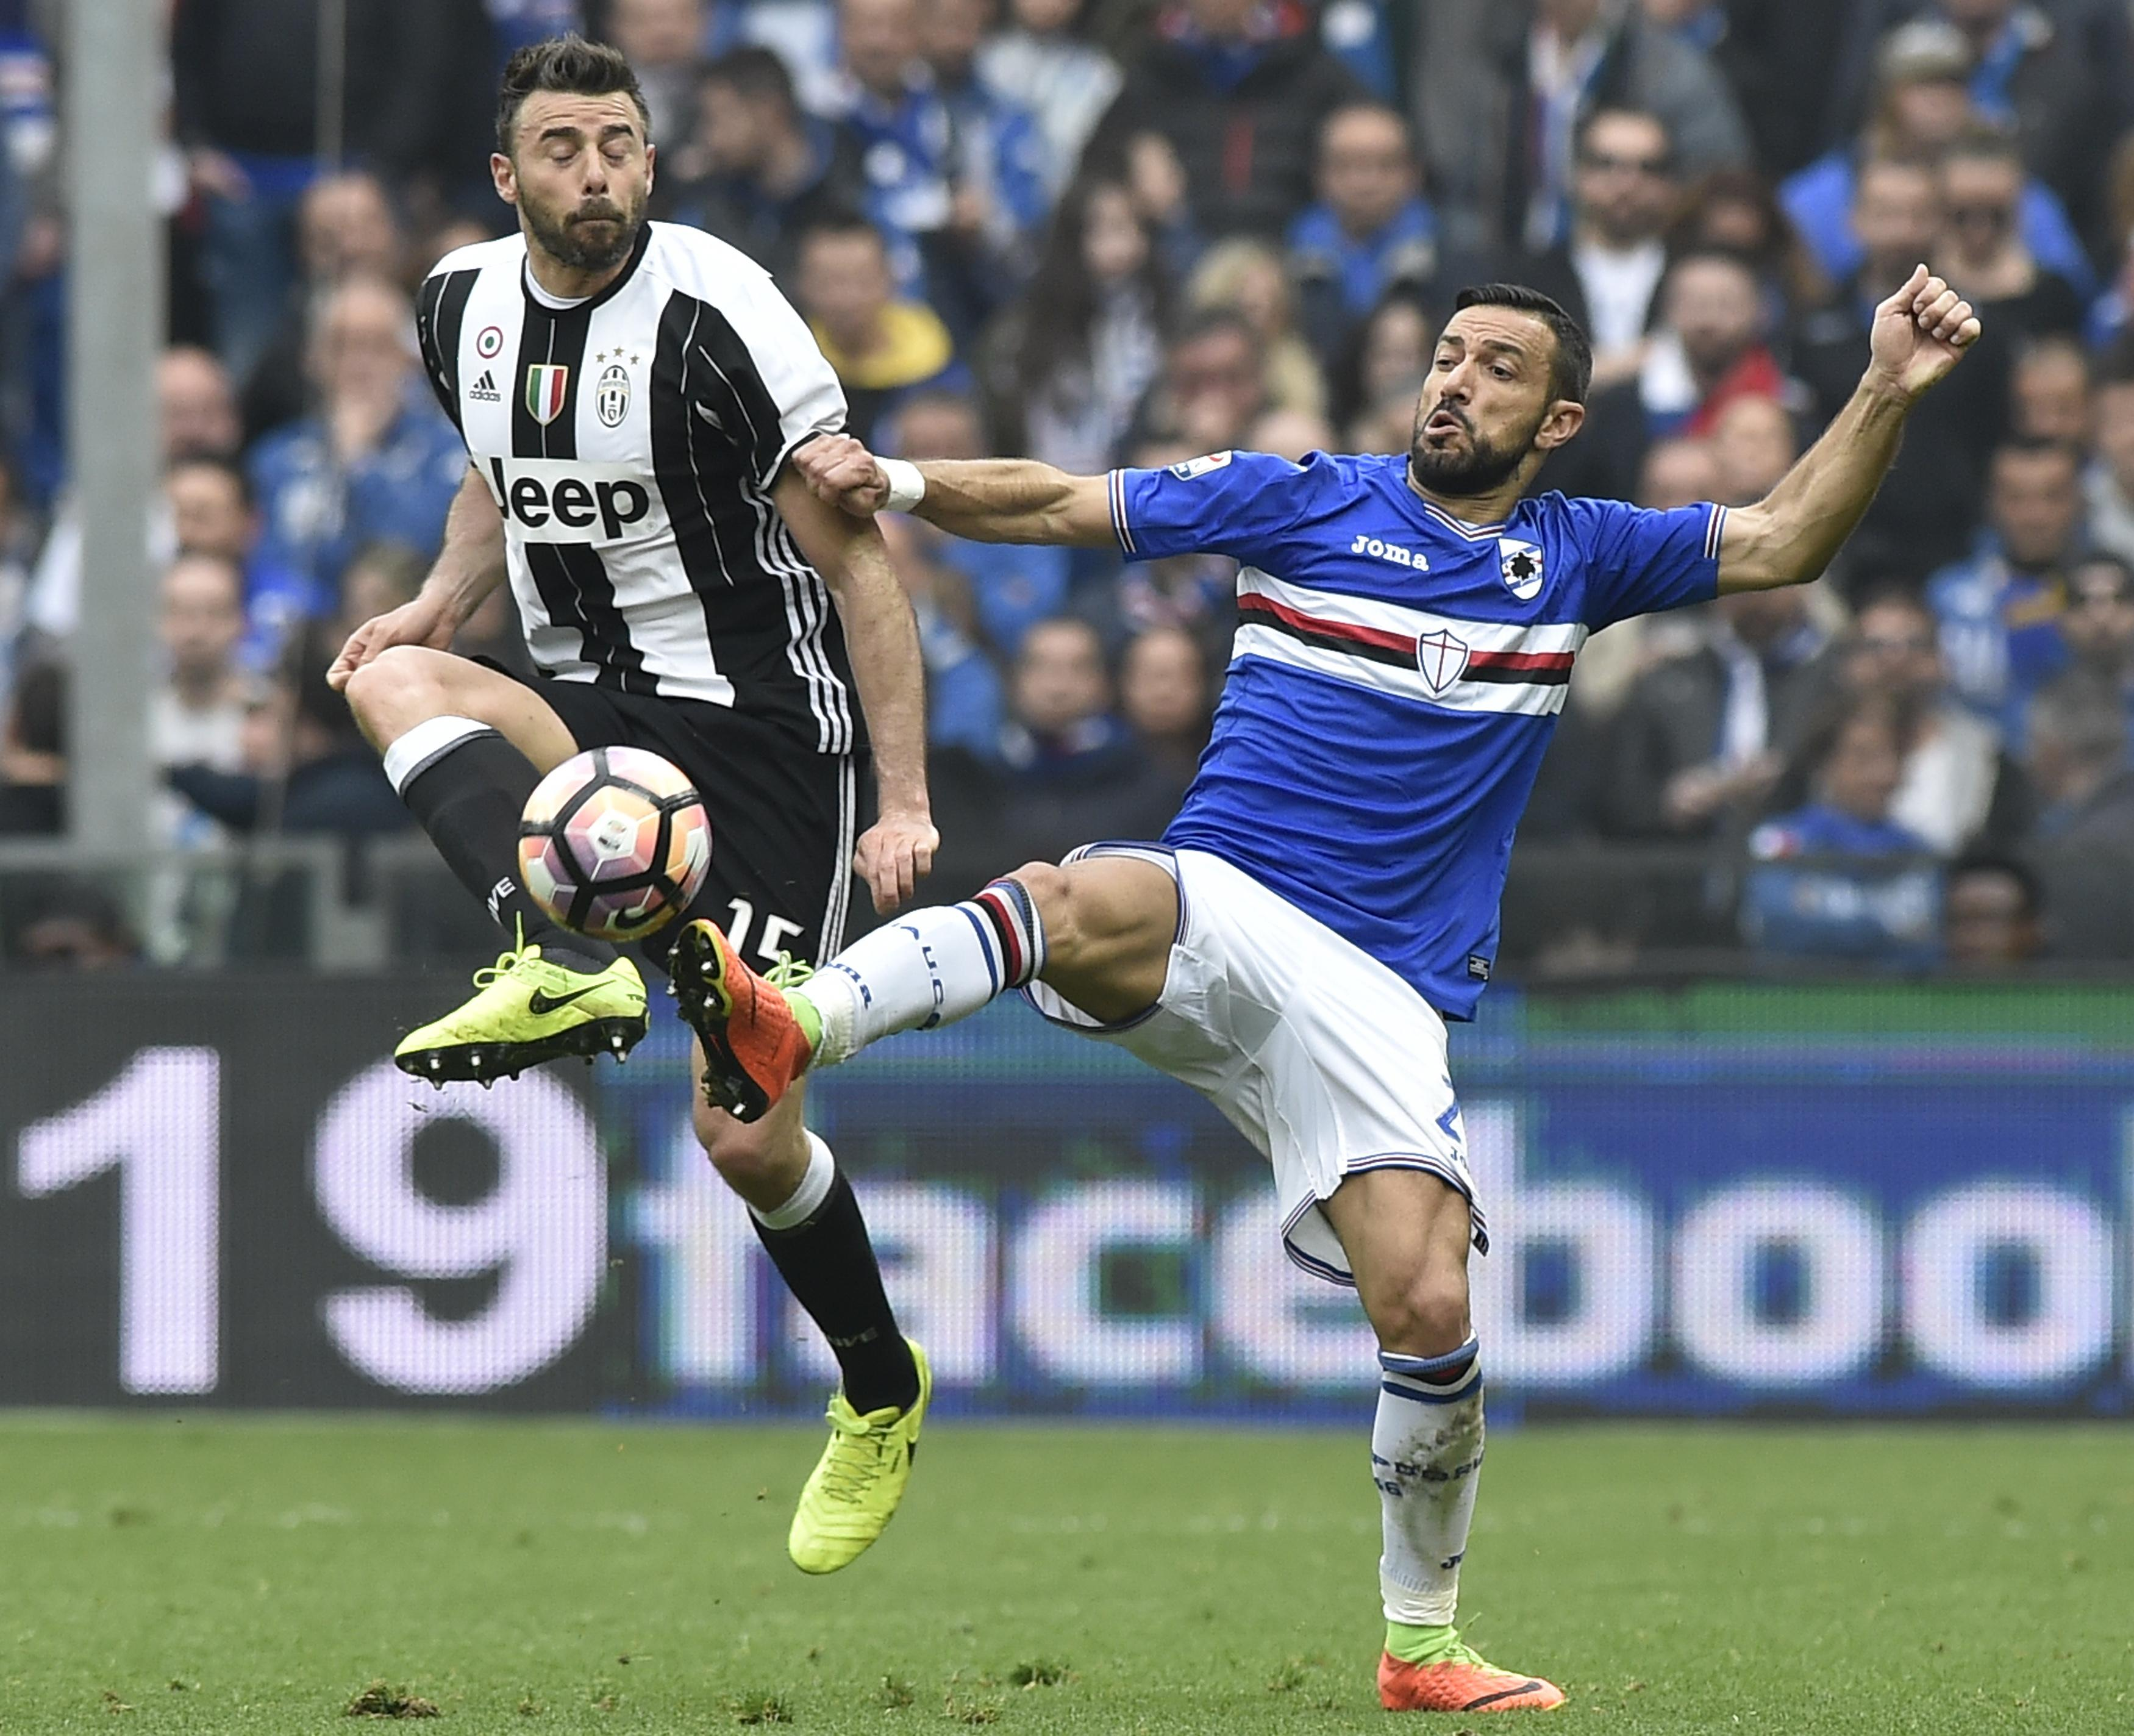 Quagliarella strikes again, VAR works overtime in Samp win